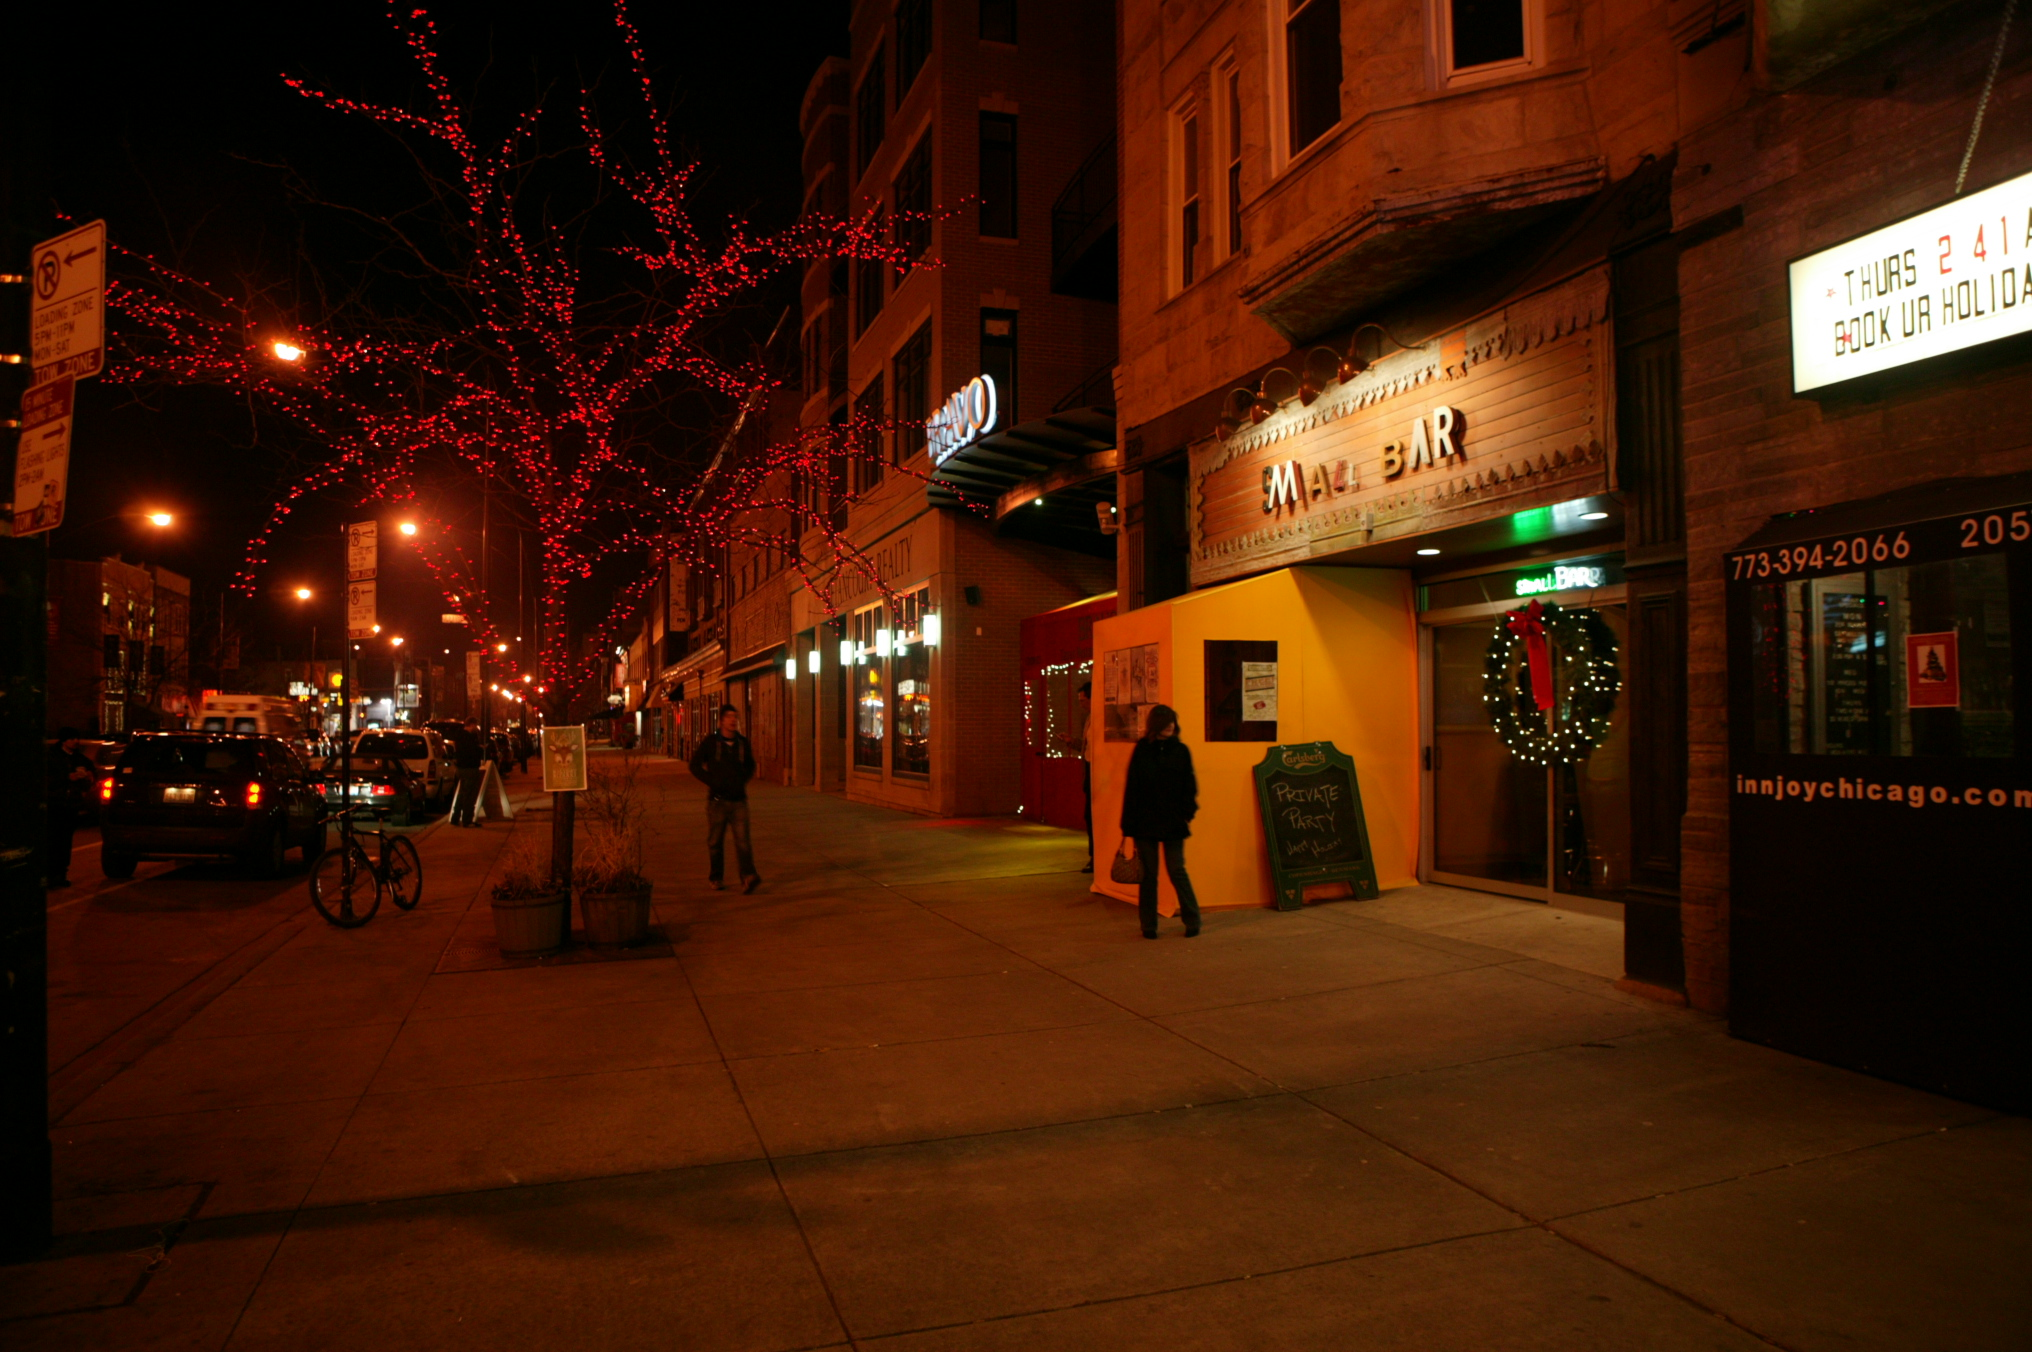 Commercial Holiday Lighting Installation for Local Businesses